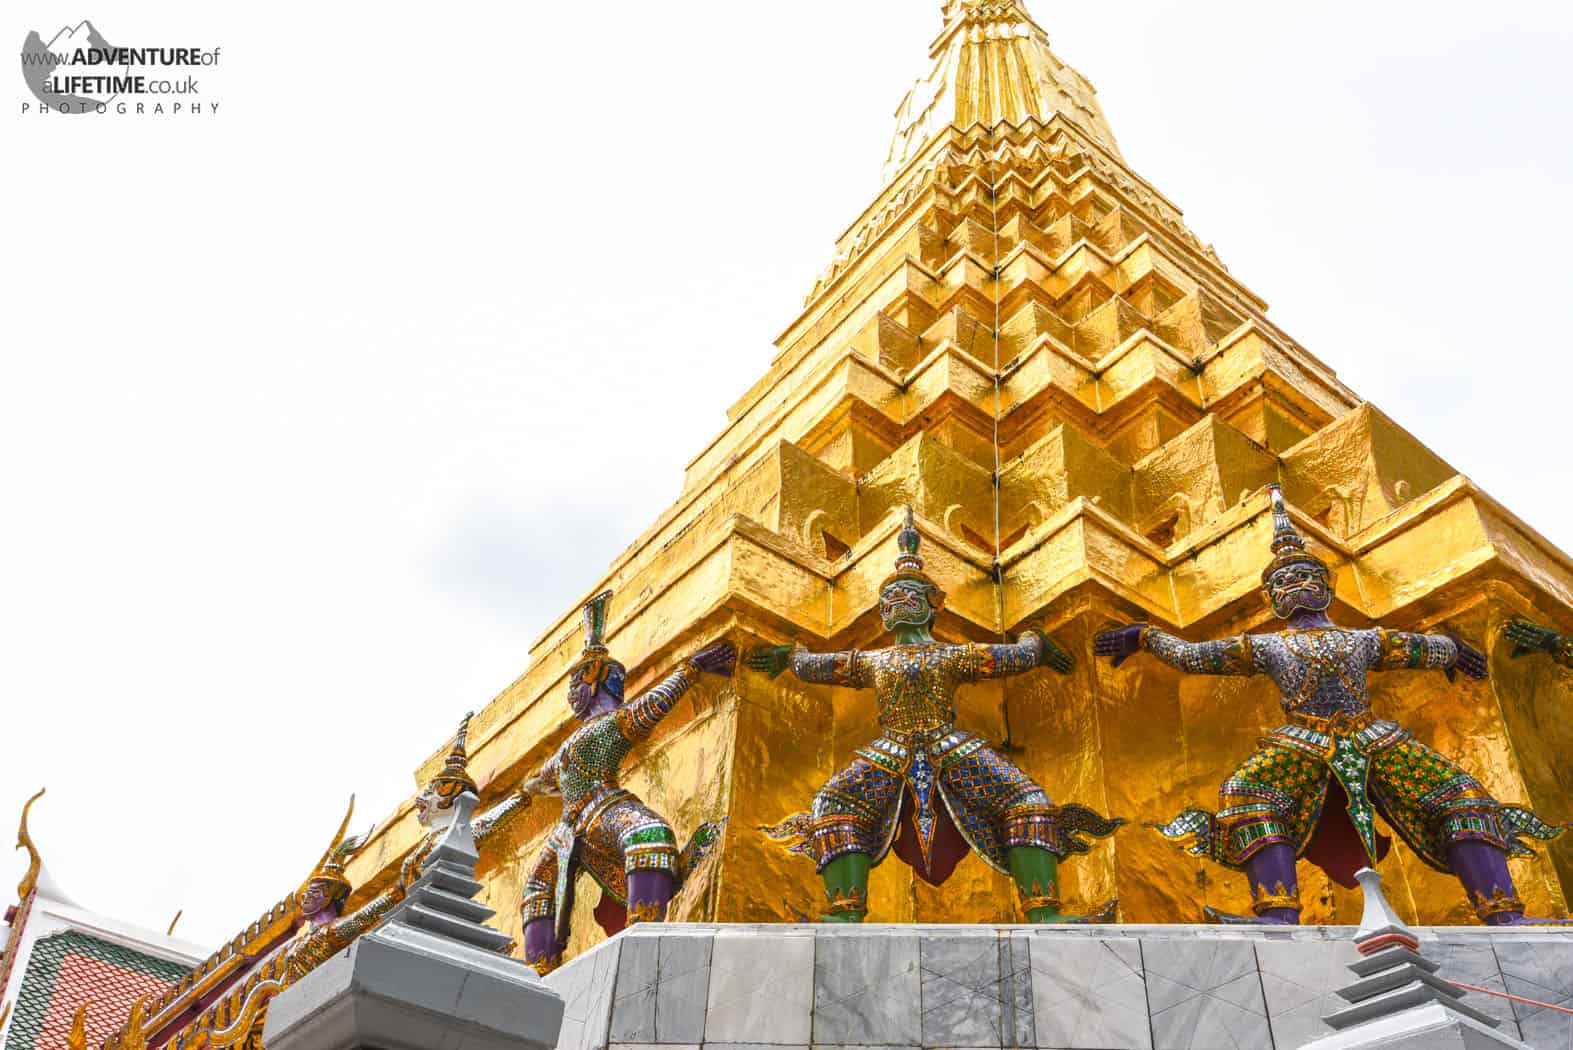 The Grand Palace Incredible Architecture